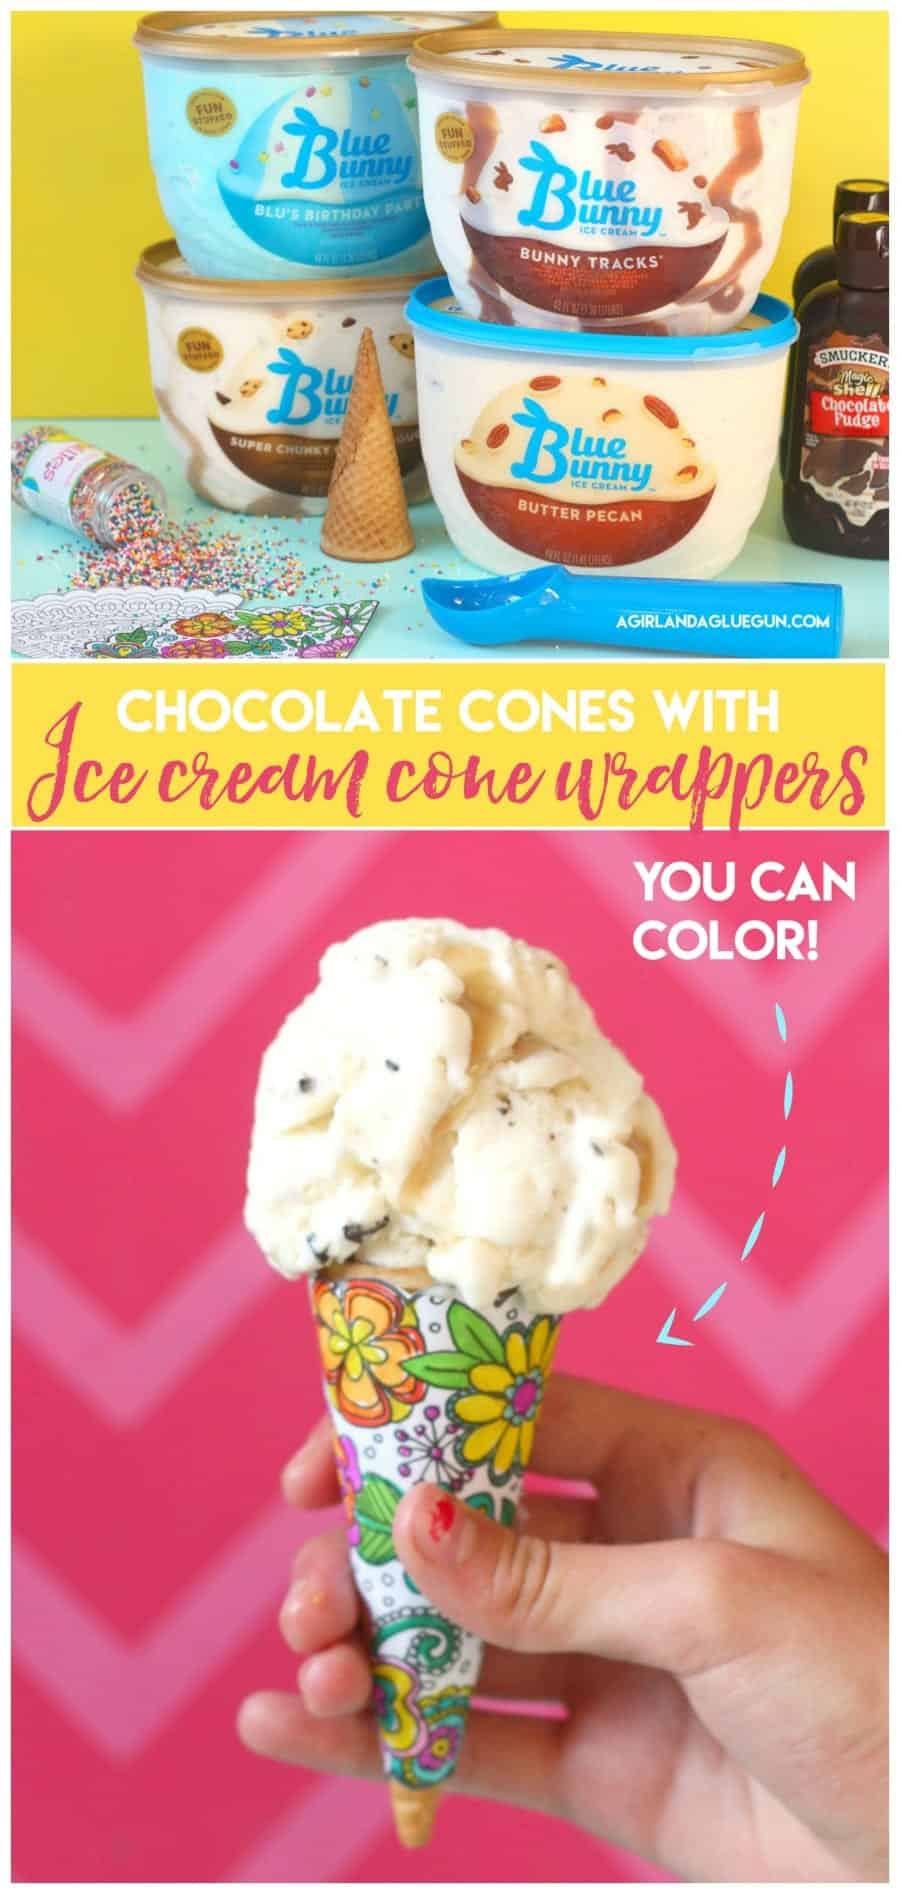 chocolate cones with ice cream cone wrappers that you can color!